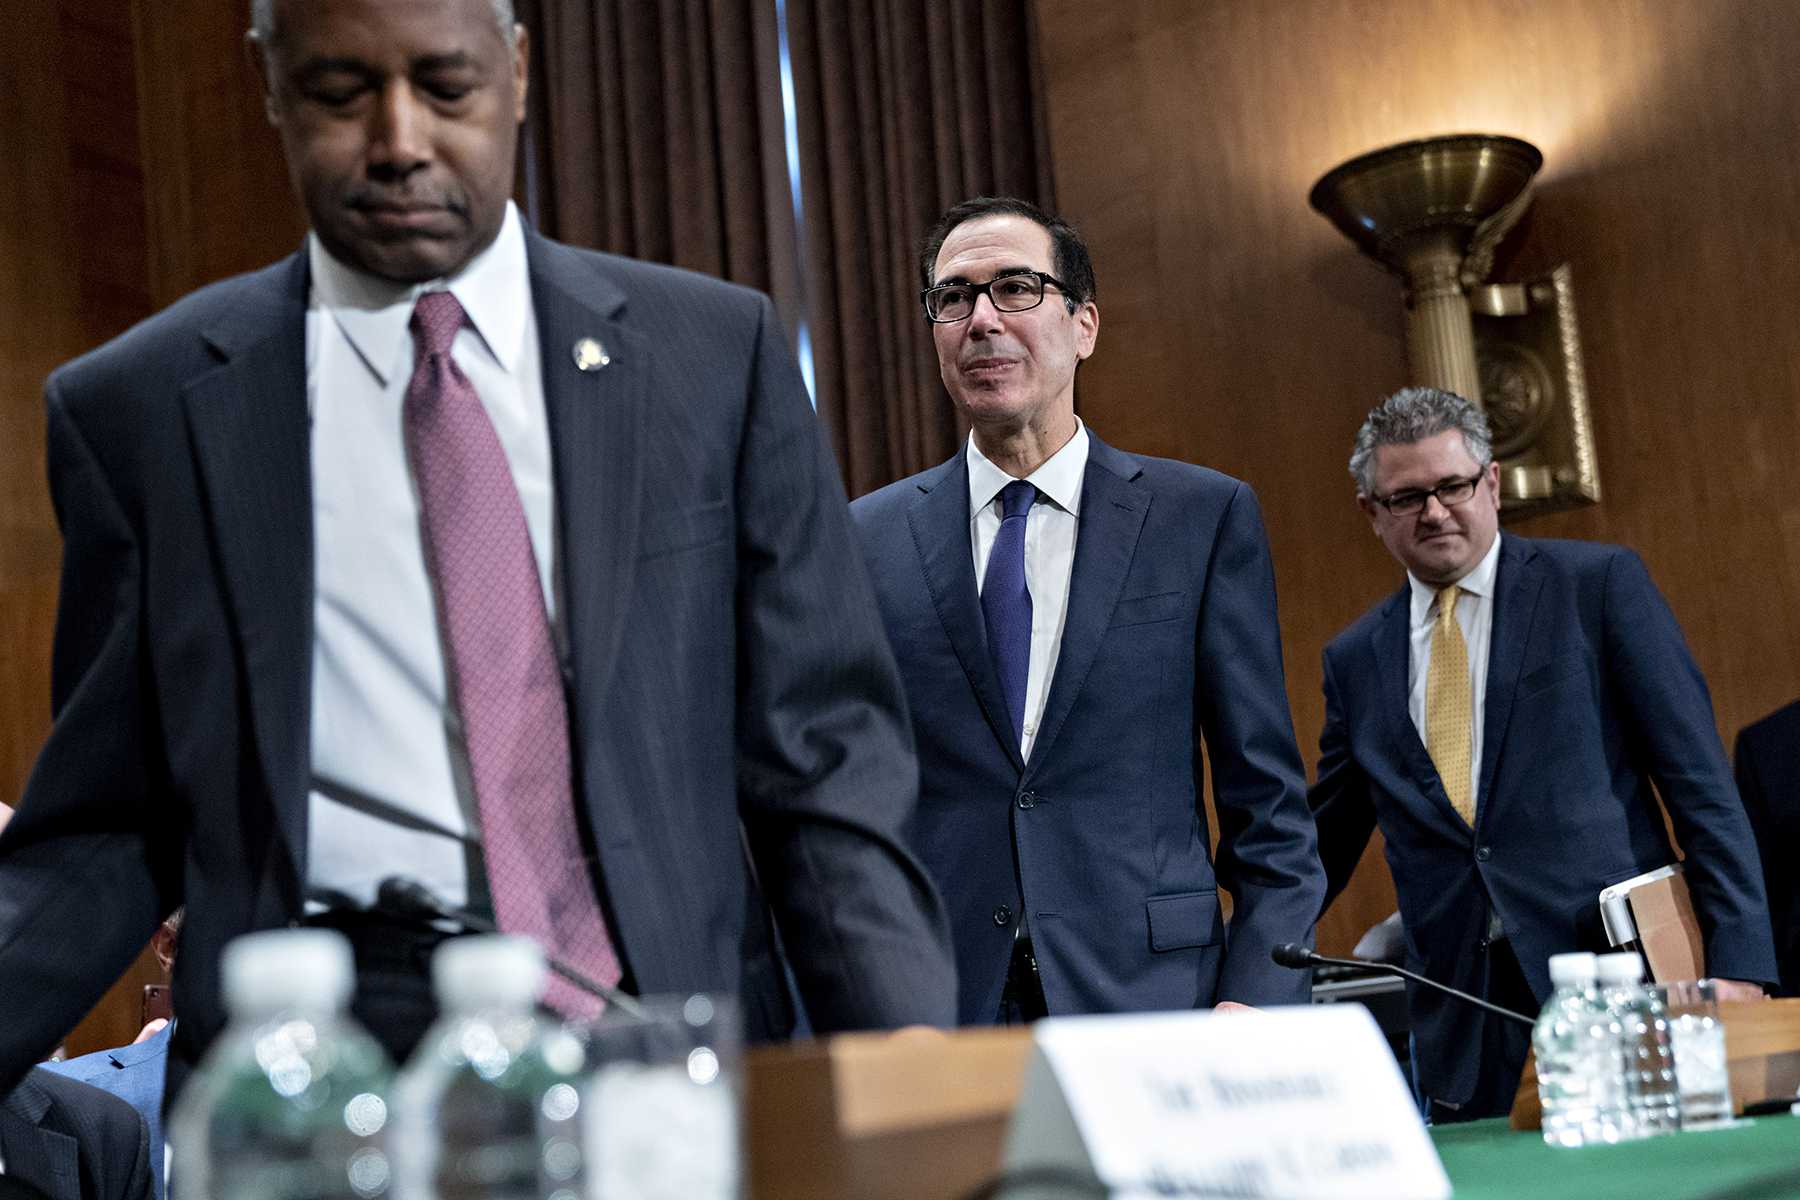 Ben Carson, secretary of Housing and Urban Development and, from left, Steven Mnuchin, U.S. Treasury secretary, and Mark Calabria, director of the Federal Housing Finance Agency, arrive at a Senate Banking Committee hearing in Washington, D.C., on Tuesday. (Bloomberg/Getty Images)